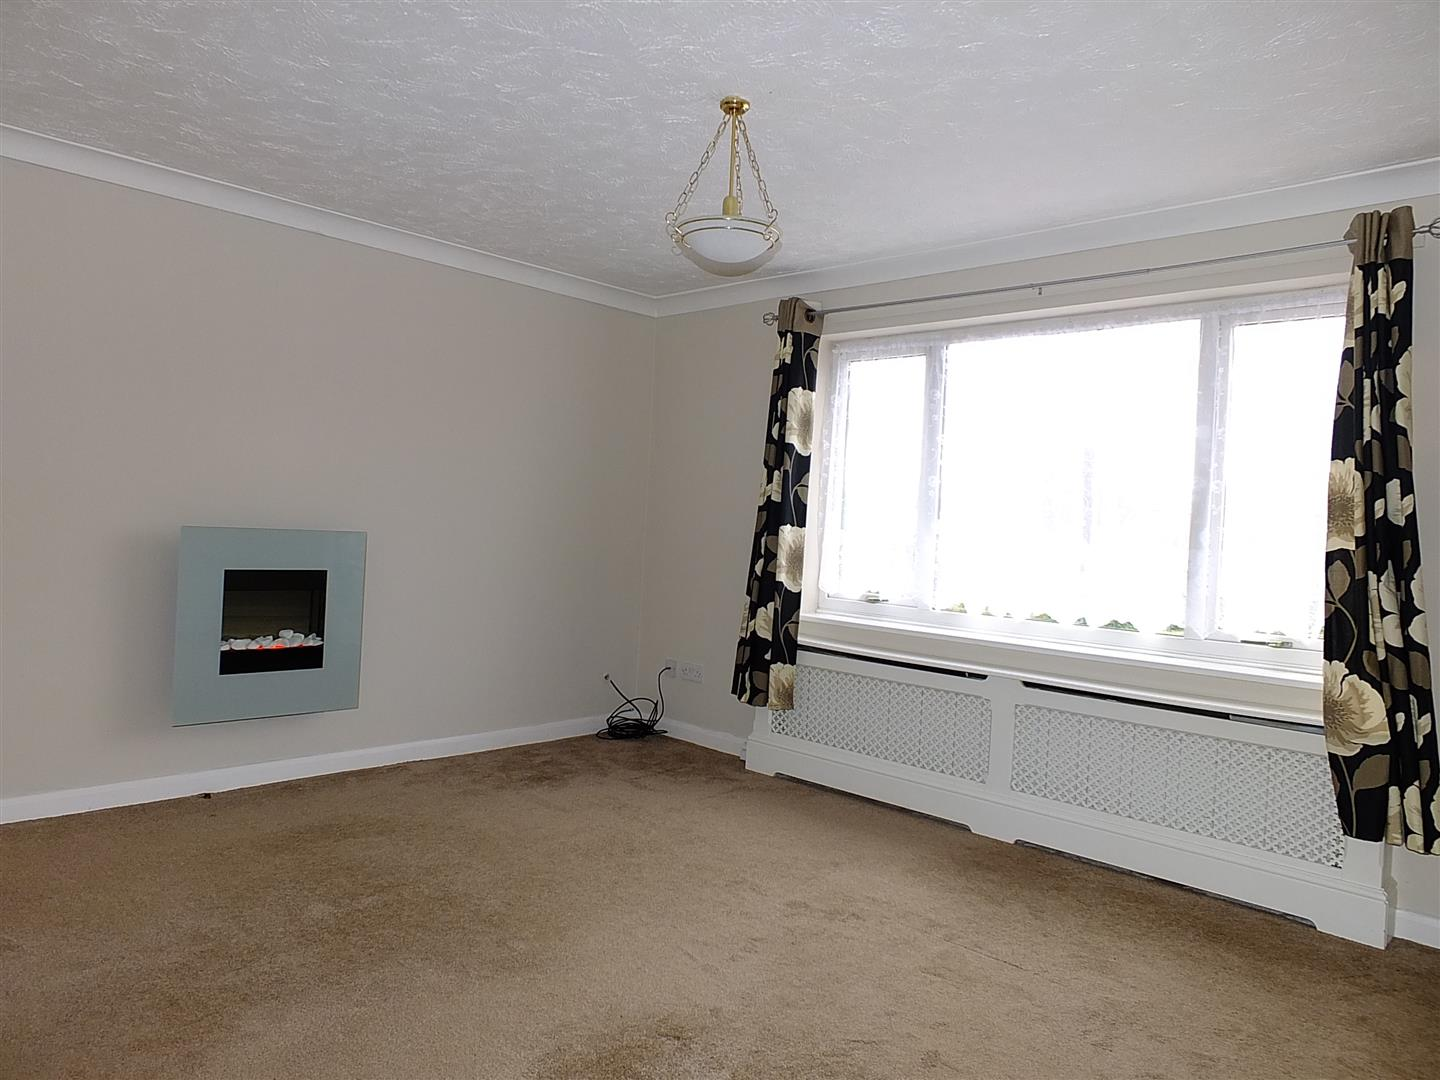 3 bed detached bungalow to rent in Long Sutton Spalding, PE12 9LY 2